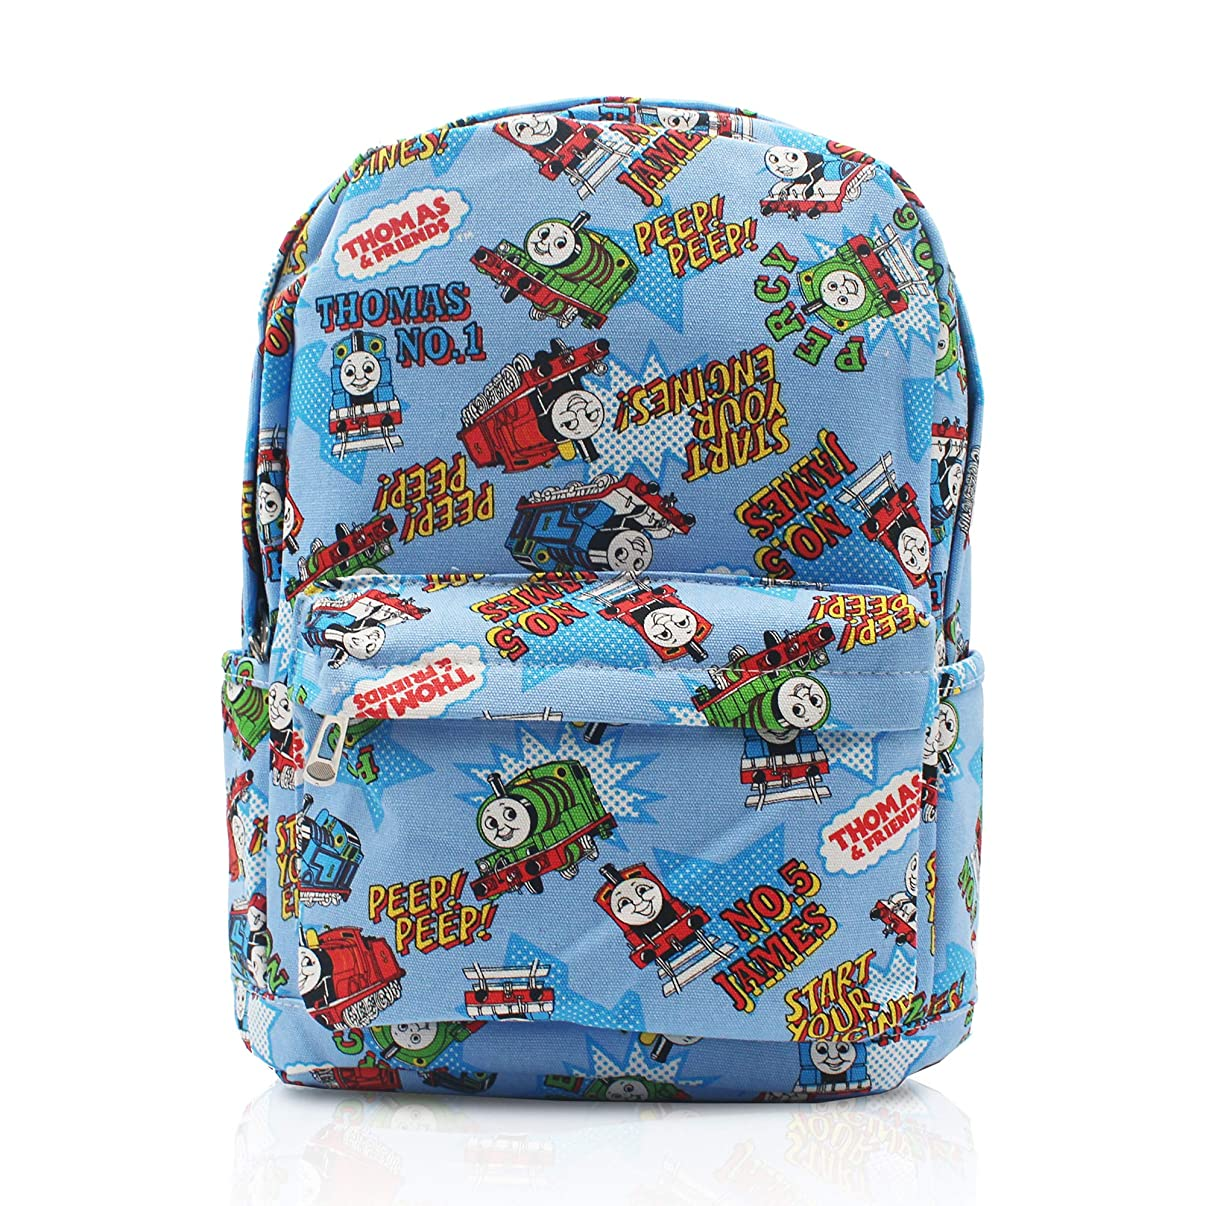 Finex Thomas The Train & Friends Blue Canvas Cute Cartoon Casual Backpack with 15 inch Laptop Storage Compartment Daypack Travel Snack Sport Bag Gift